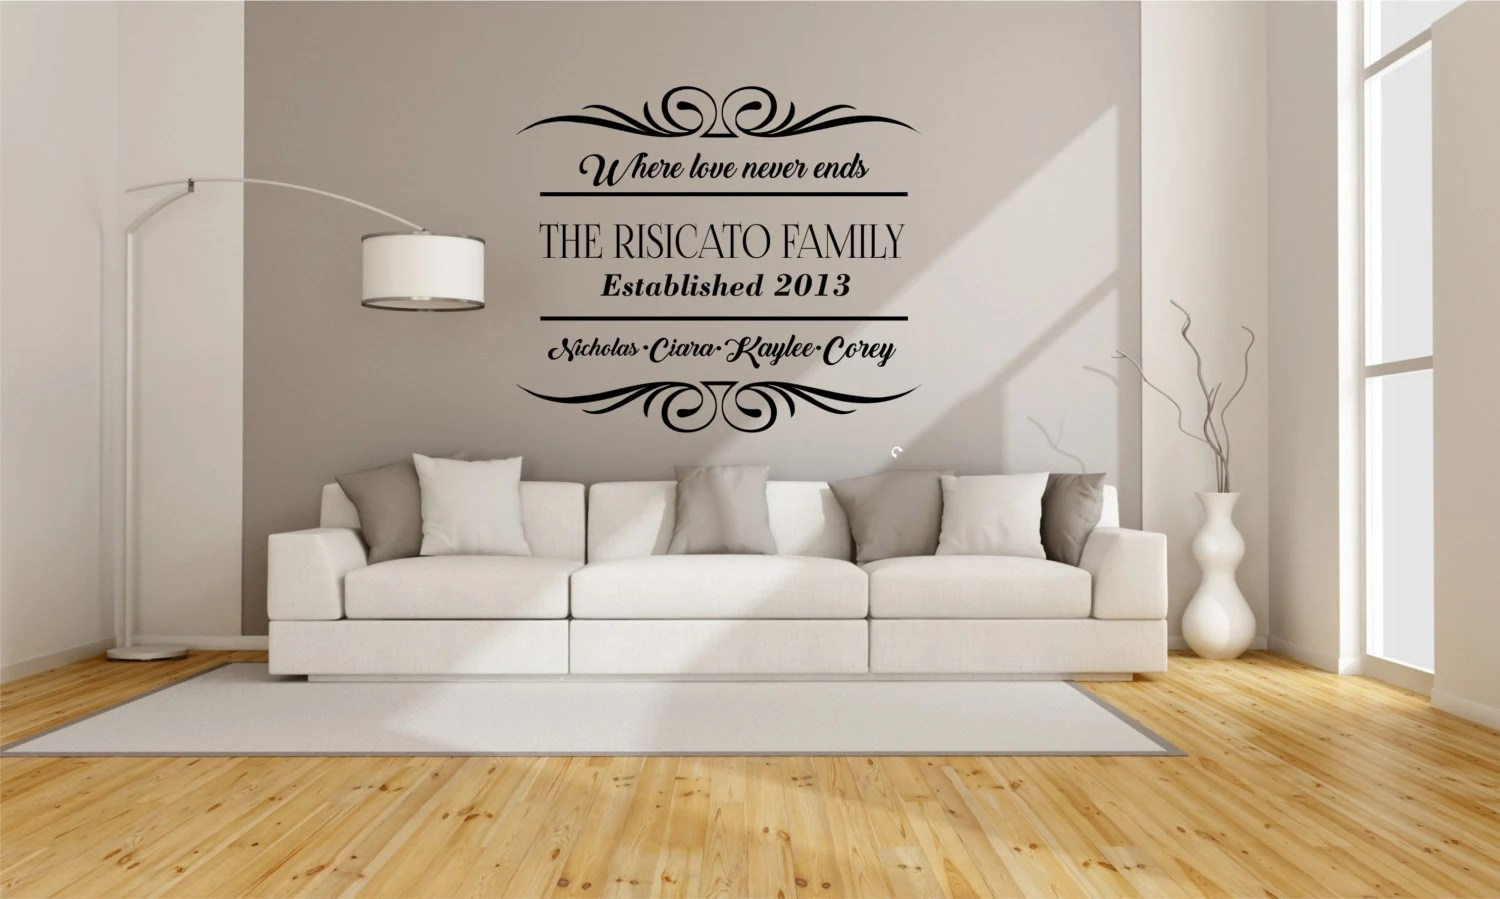 wall stickers living room mustard yellow and grey ideas decal etsy family love never ends art